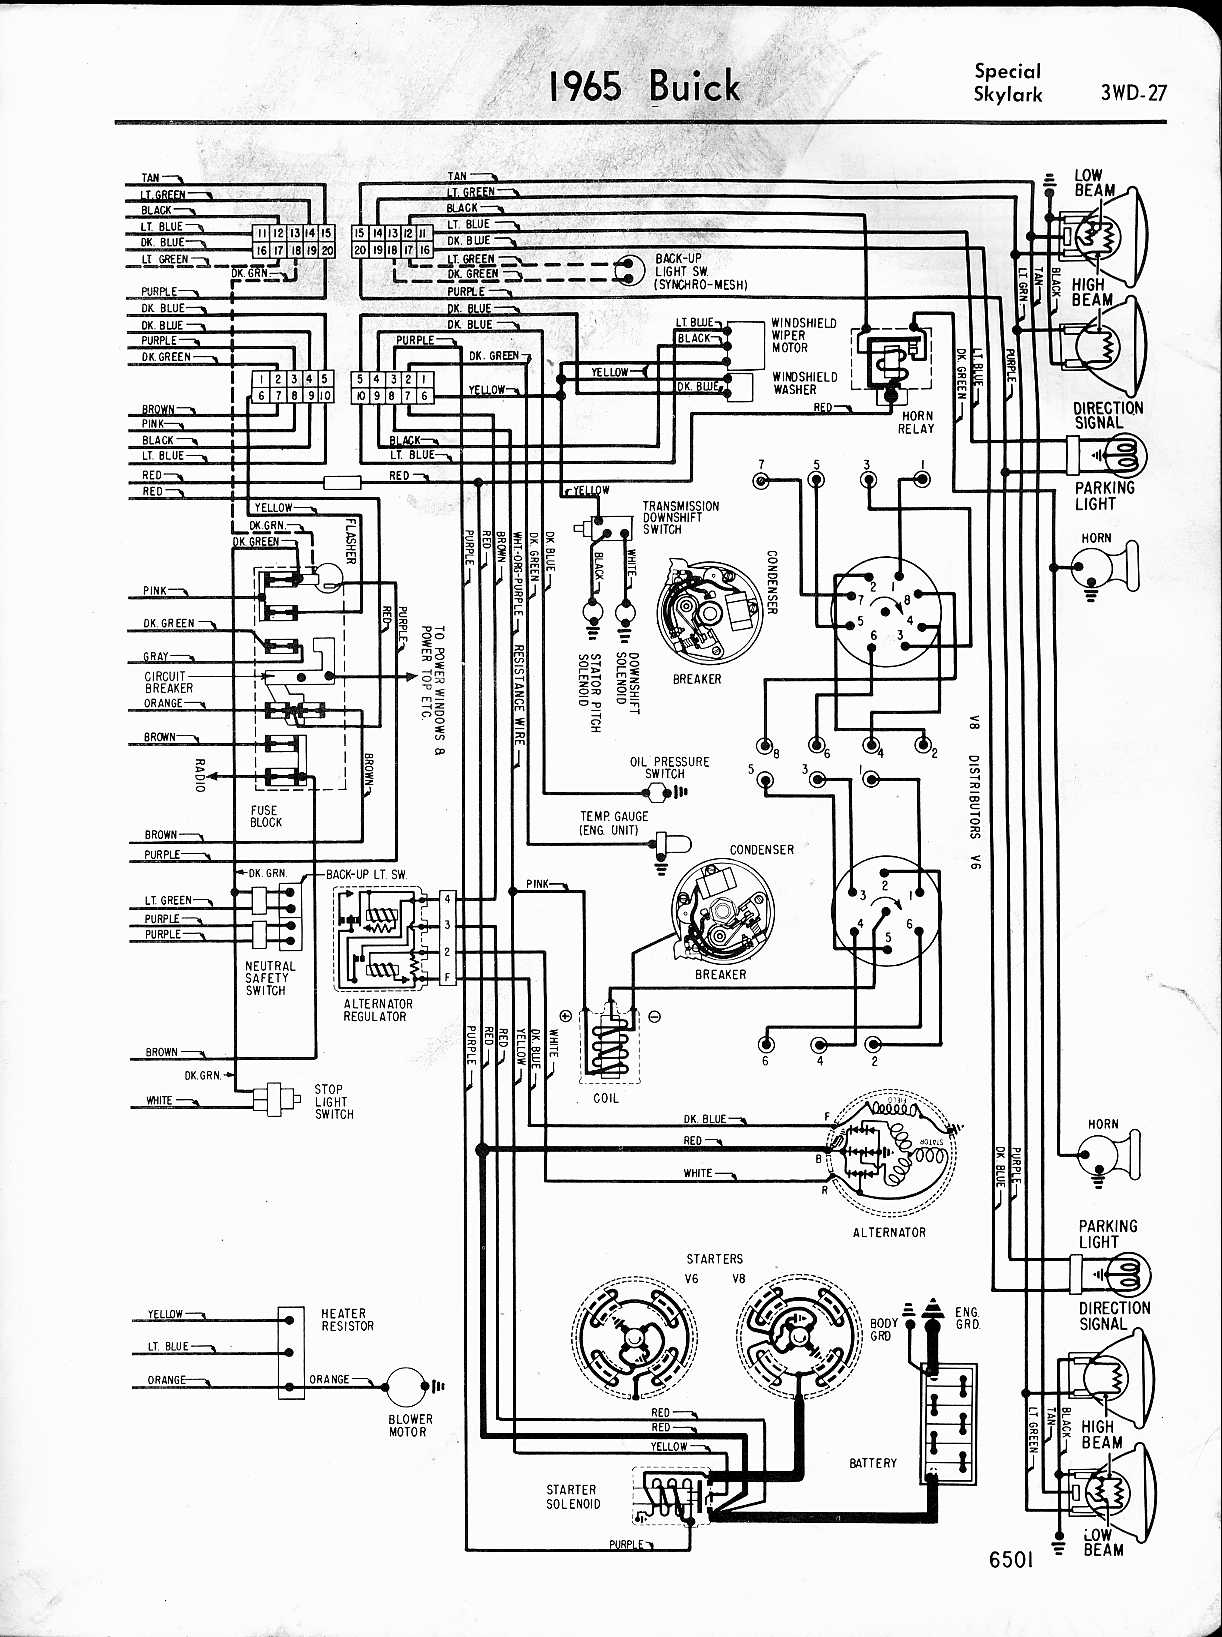 [FPWZ_2684]  4AE Buick Lucerne Headlight Wiring Harness | Wiring Resources | 97 Ranger Projector Headlight Wiring Diagram |  | Wiring Resources